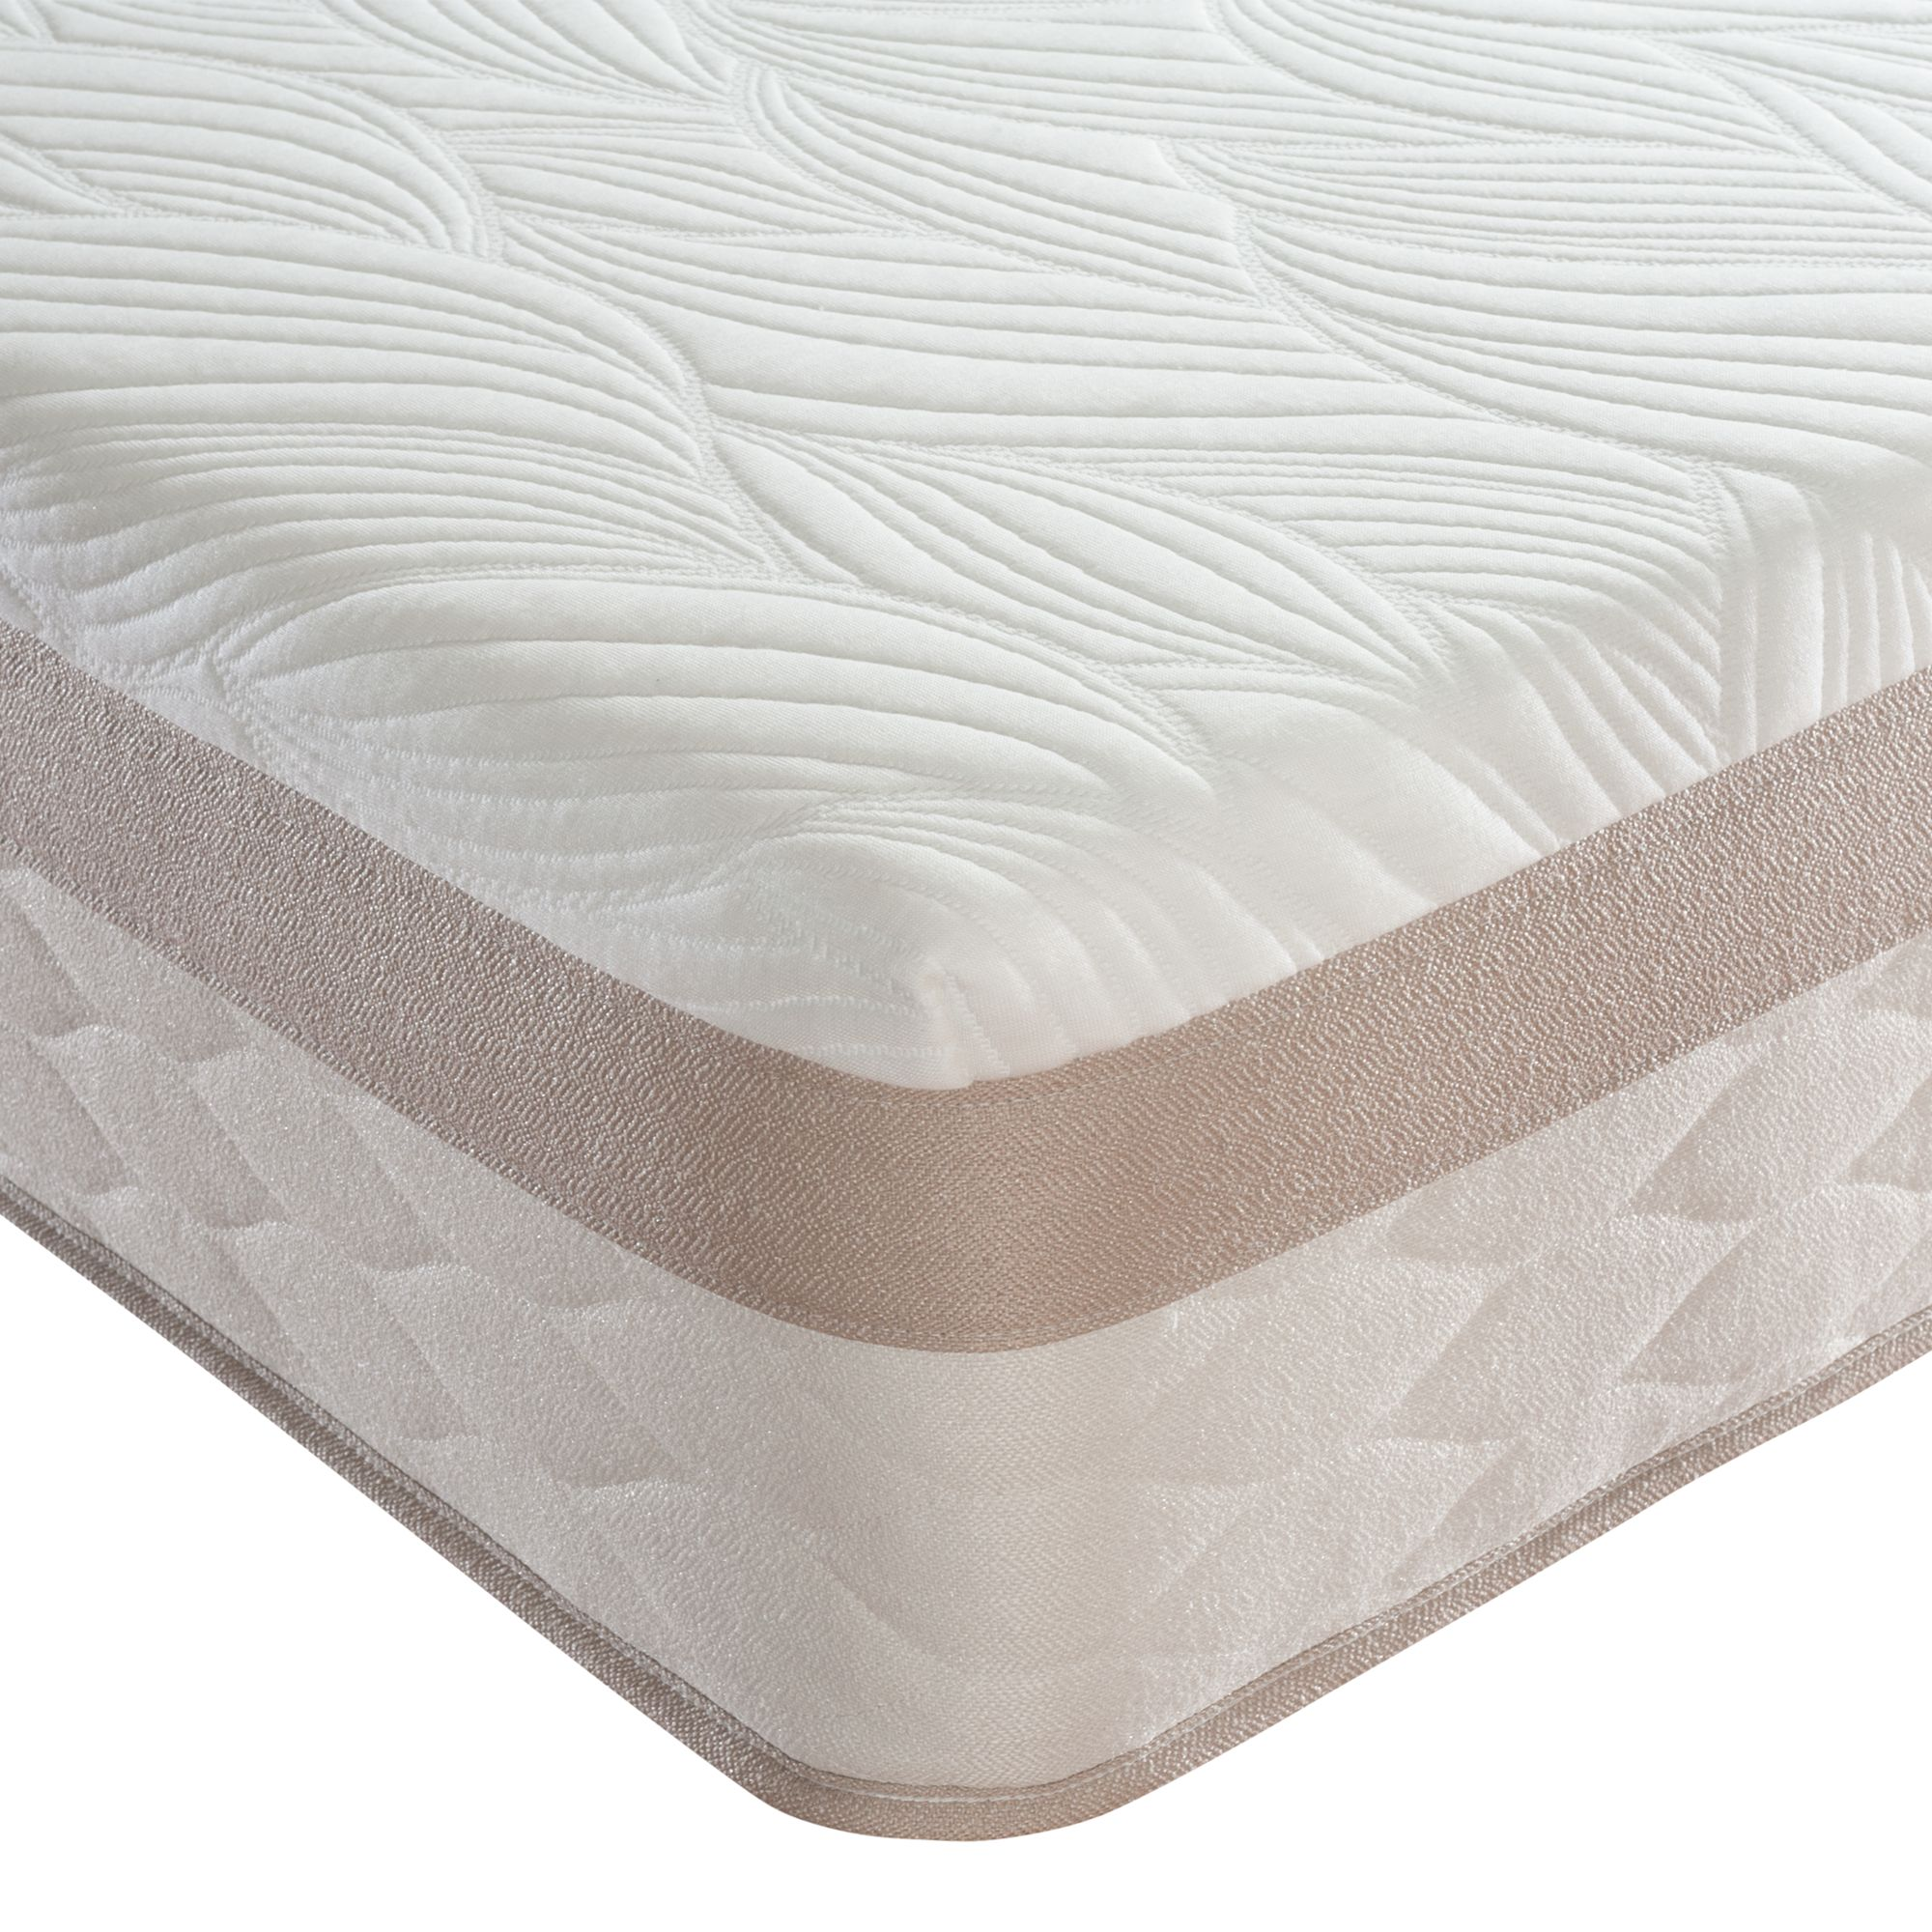 Sealy Posturepedic Hybrid Series 400 Mattress, Double